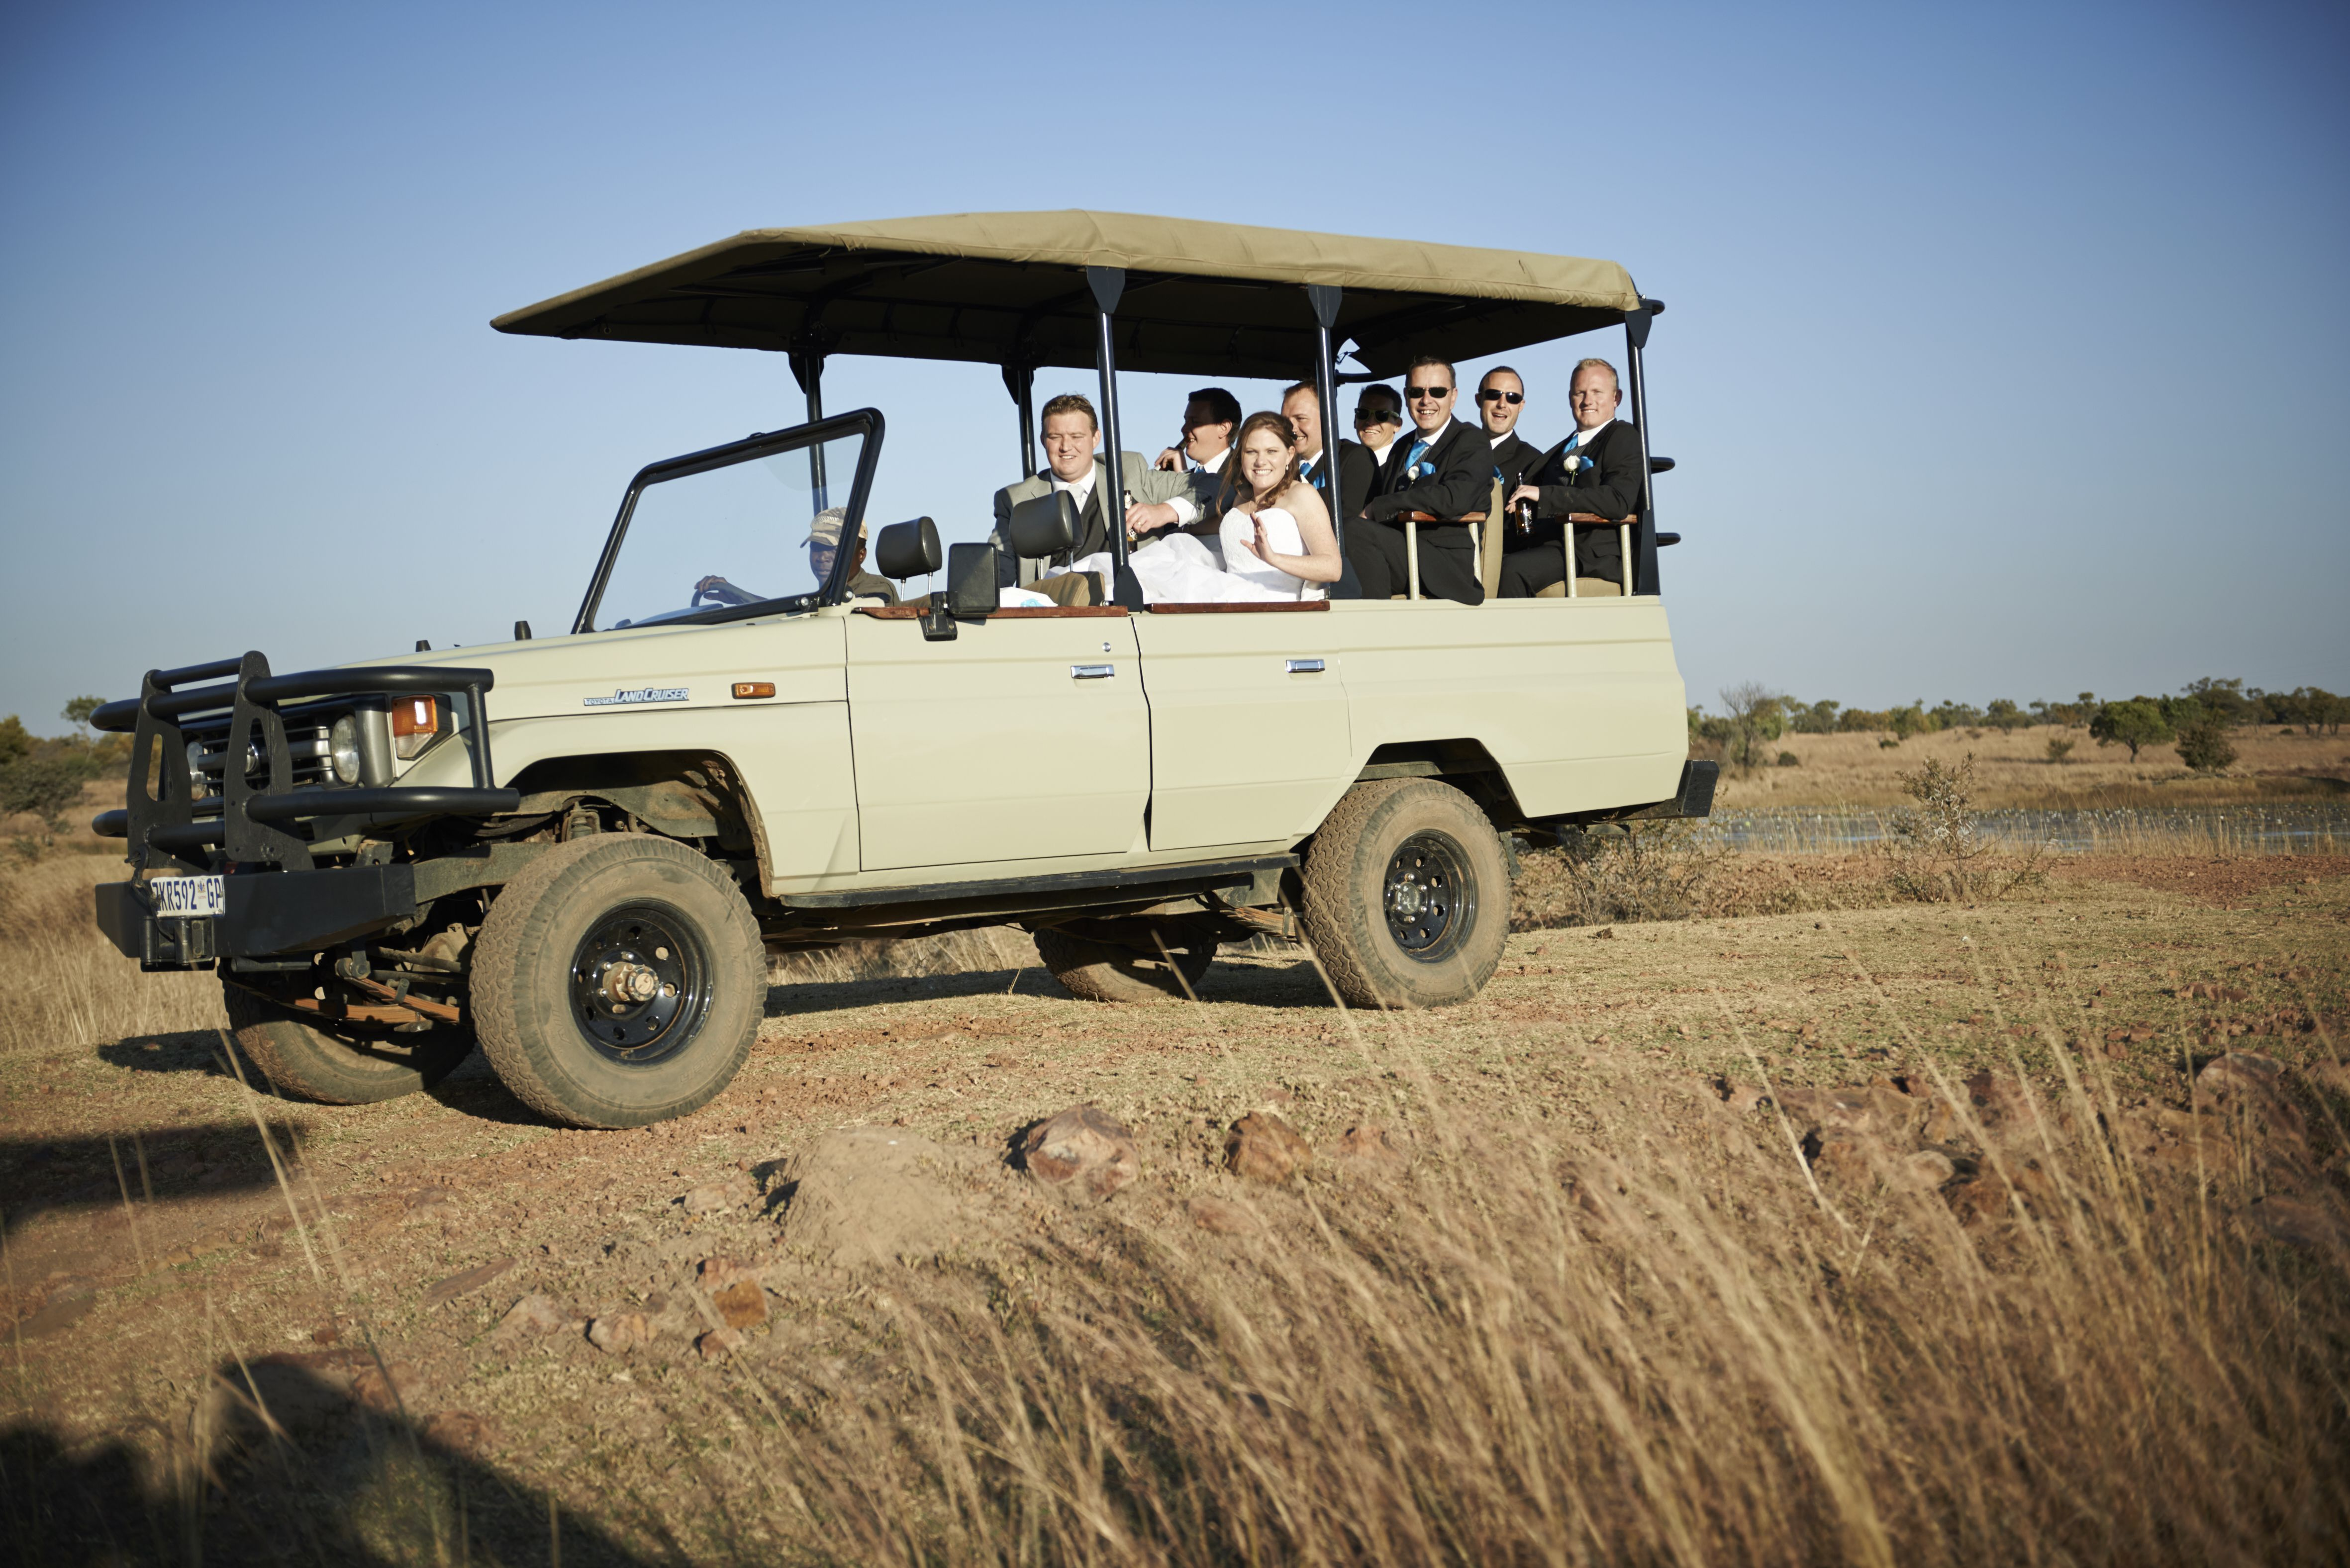 Bush wedding, game drive vehicle